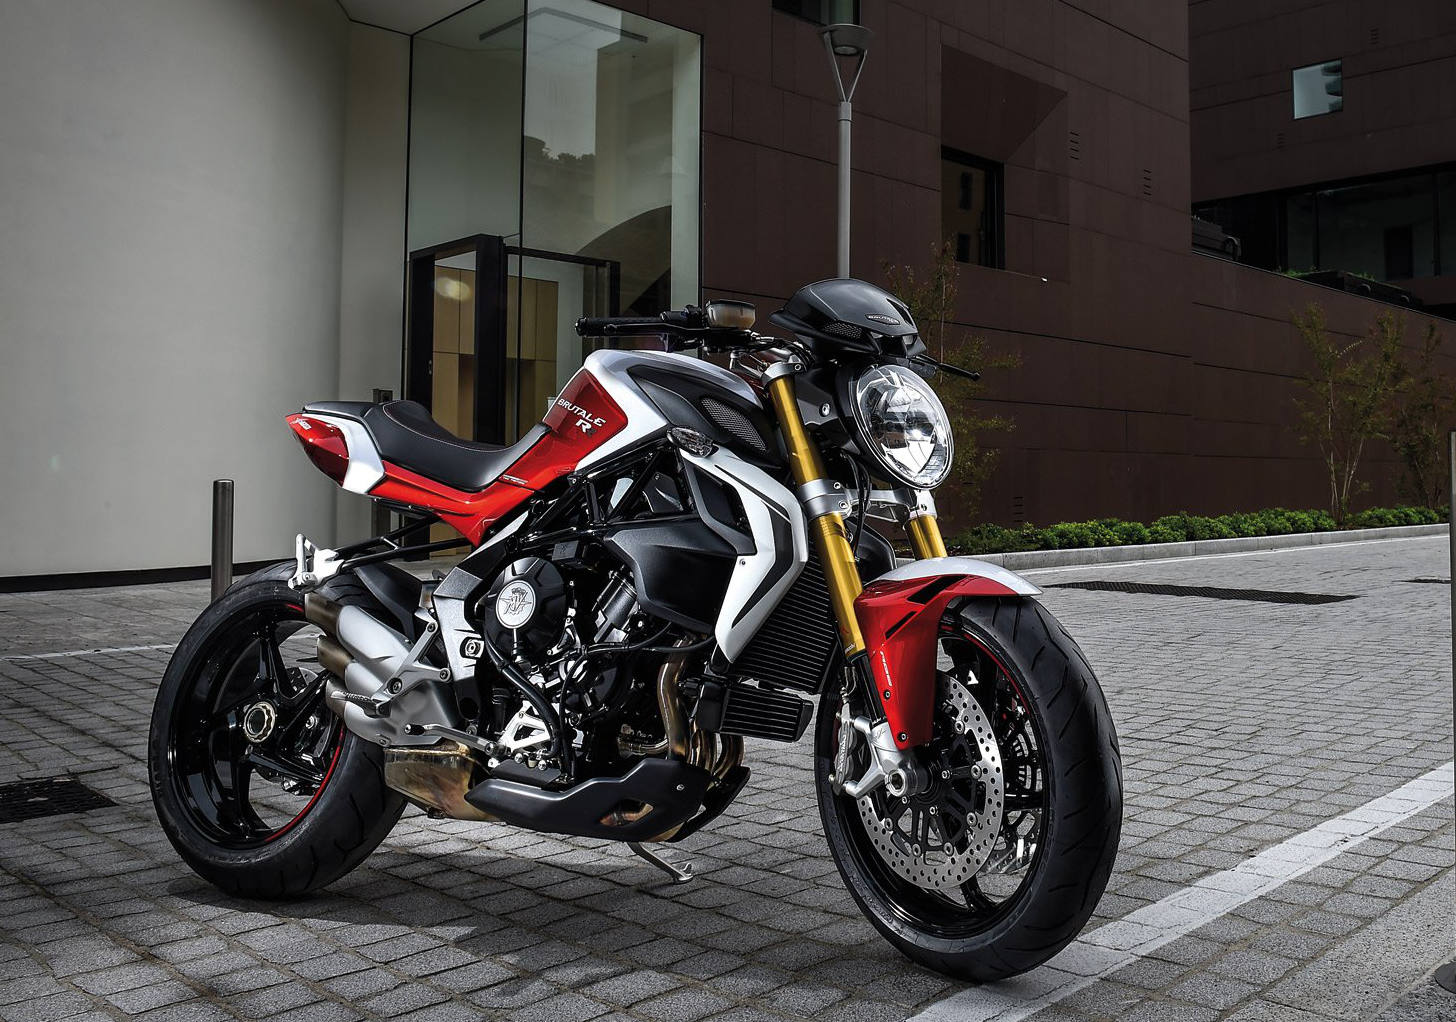 mv agusta unveils new more powerful brutale 800 rr motorcycle news. Black Bedroom Furniture Sets. Home Design Ideas